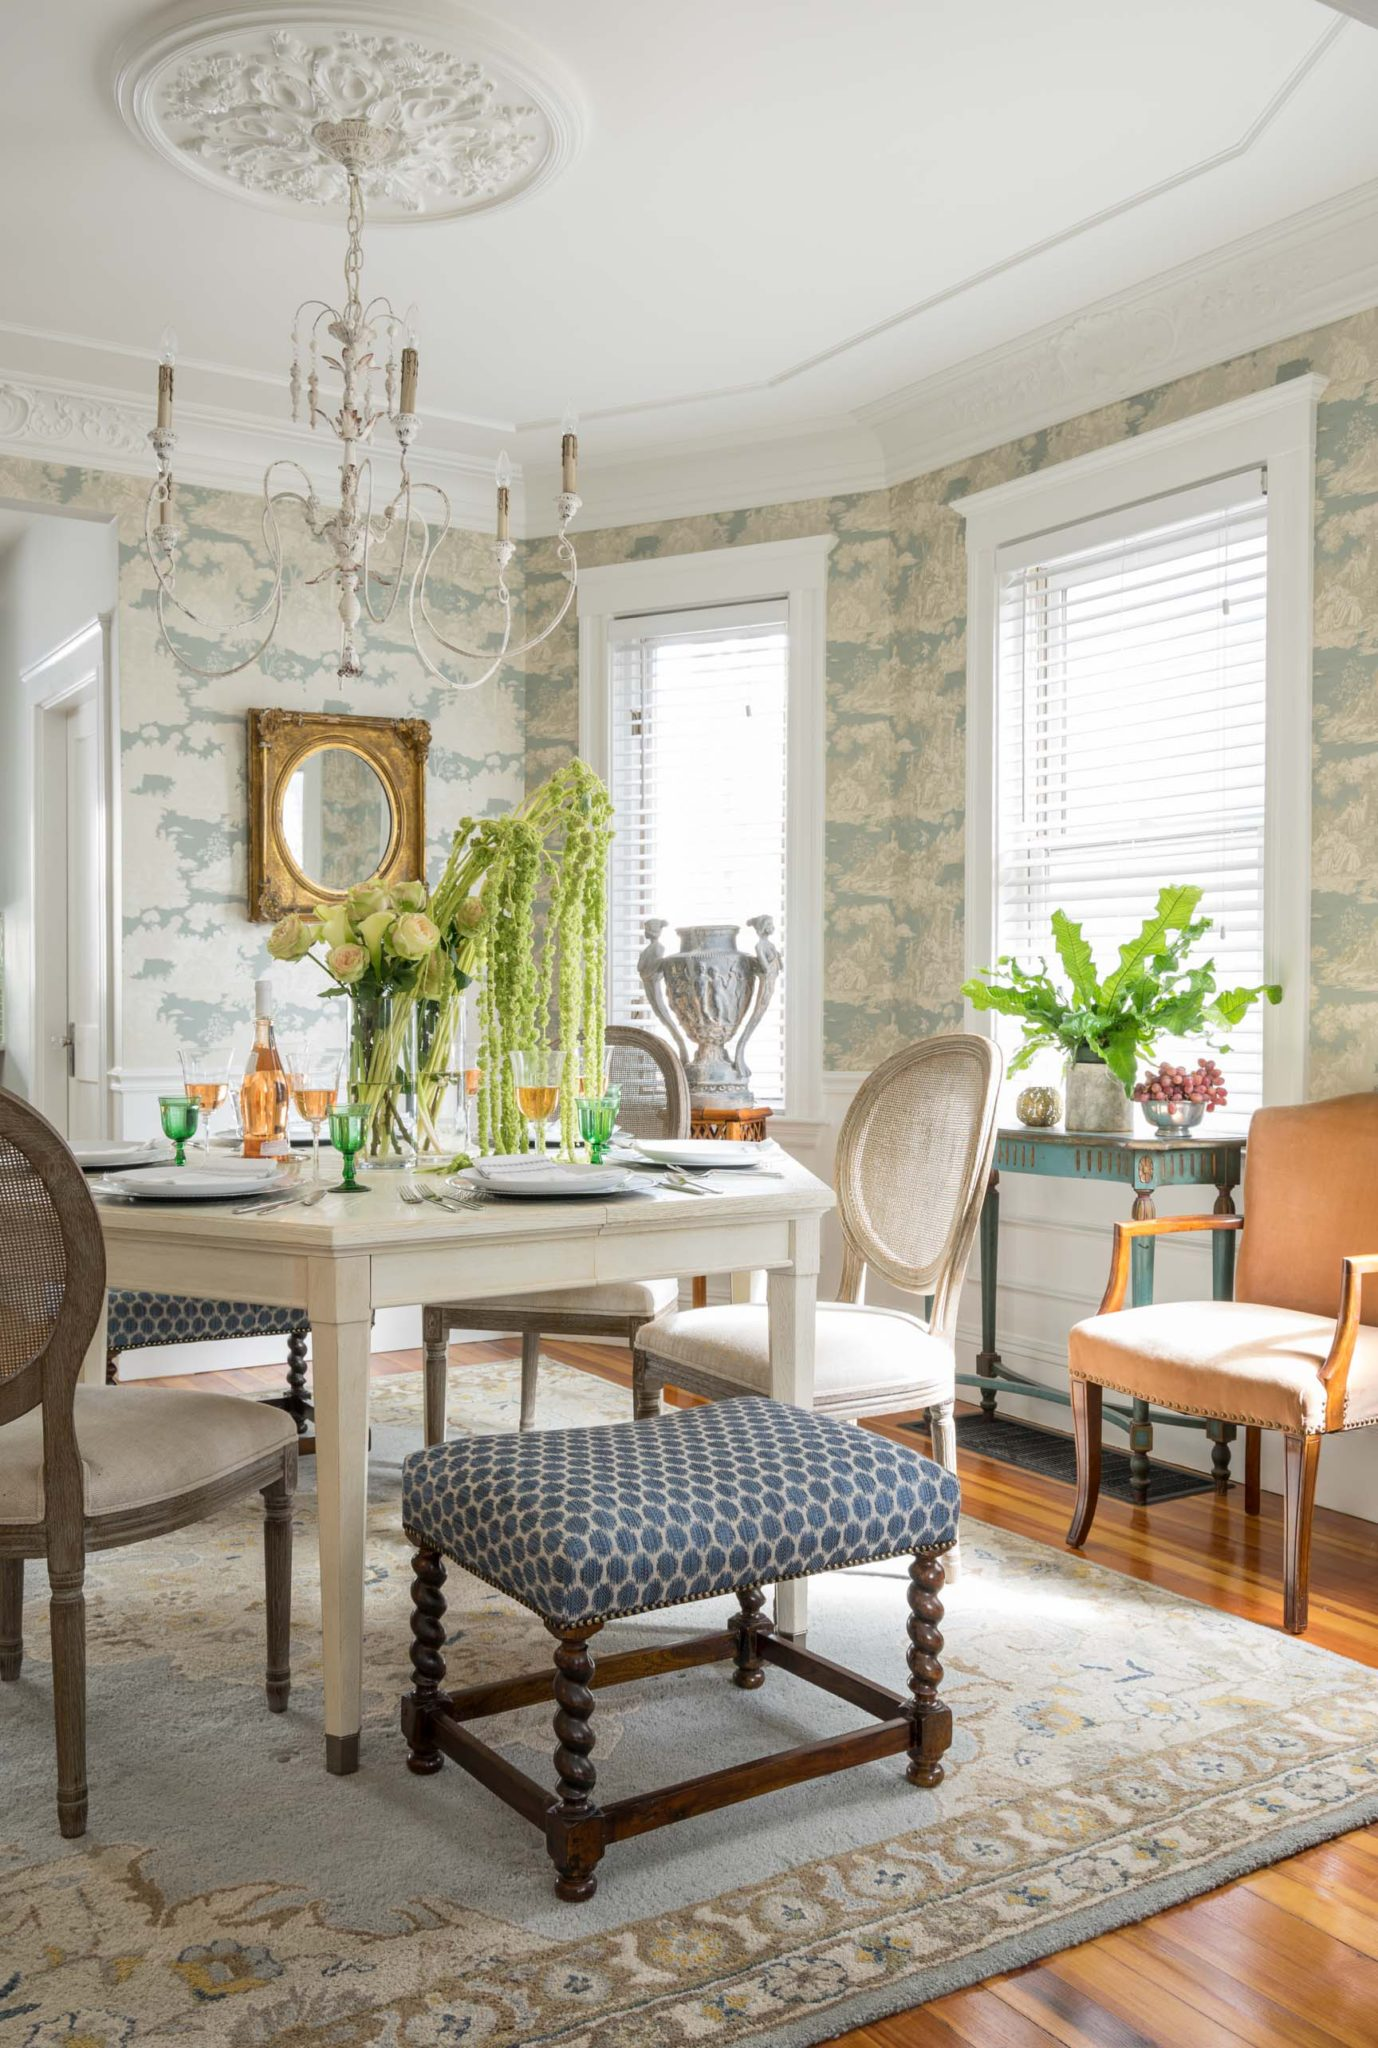 Bright dining room eclectic seating, molded ceiling rosette, elegant wallpaper by Dane Austin Design